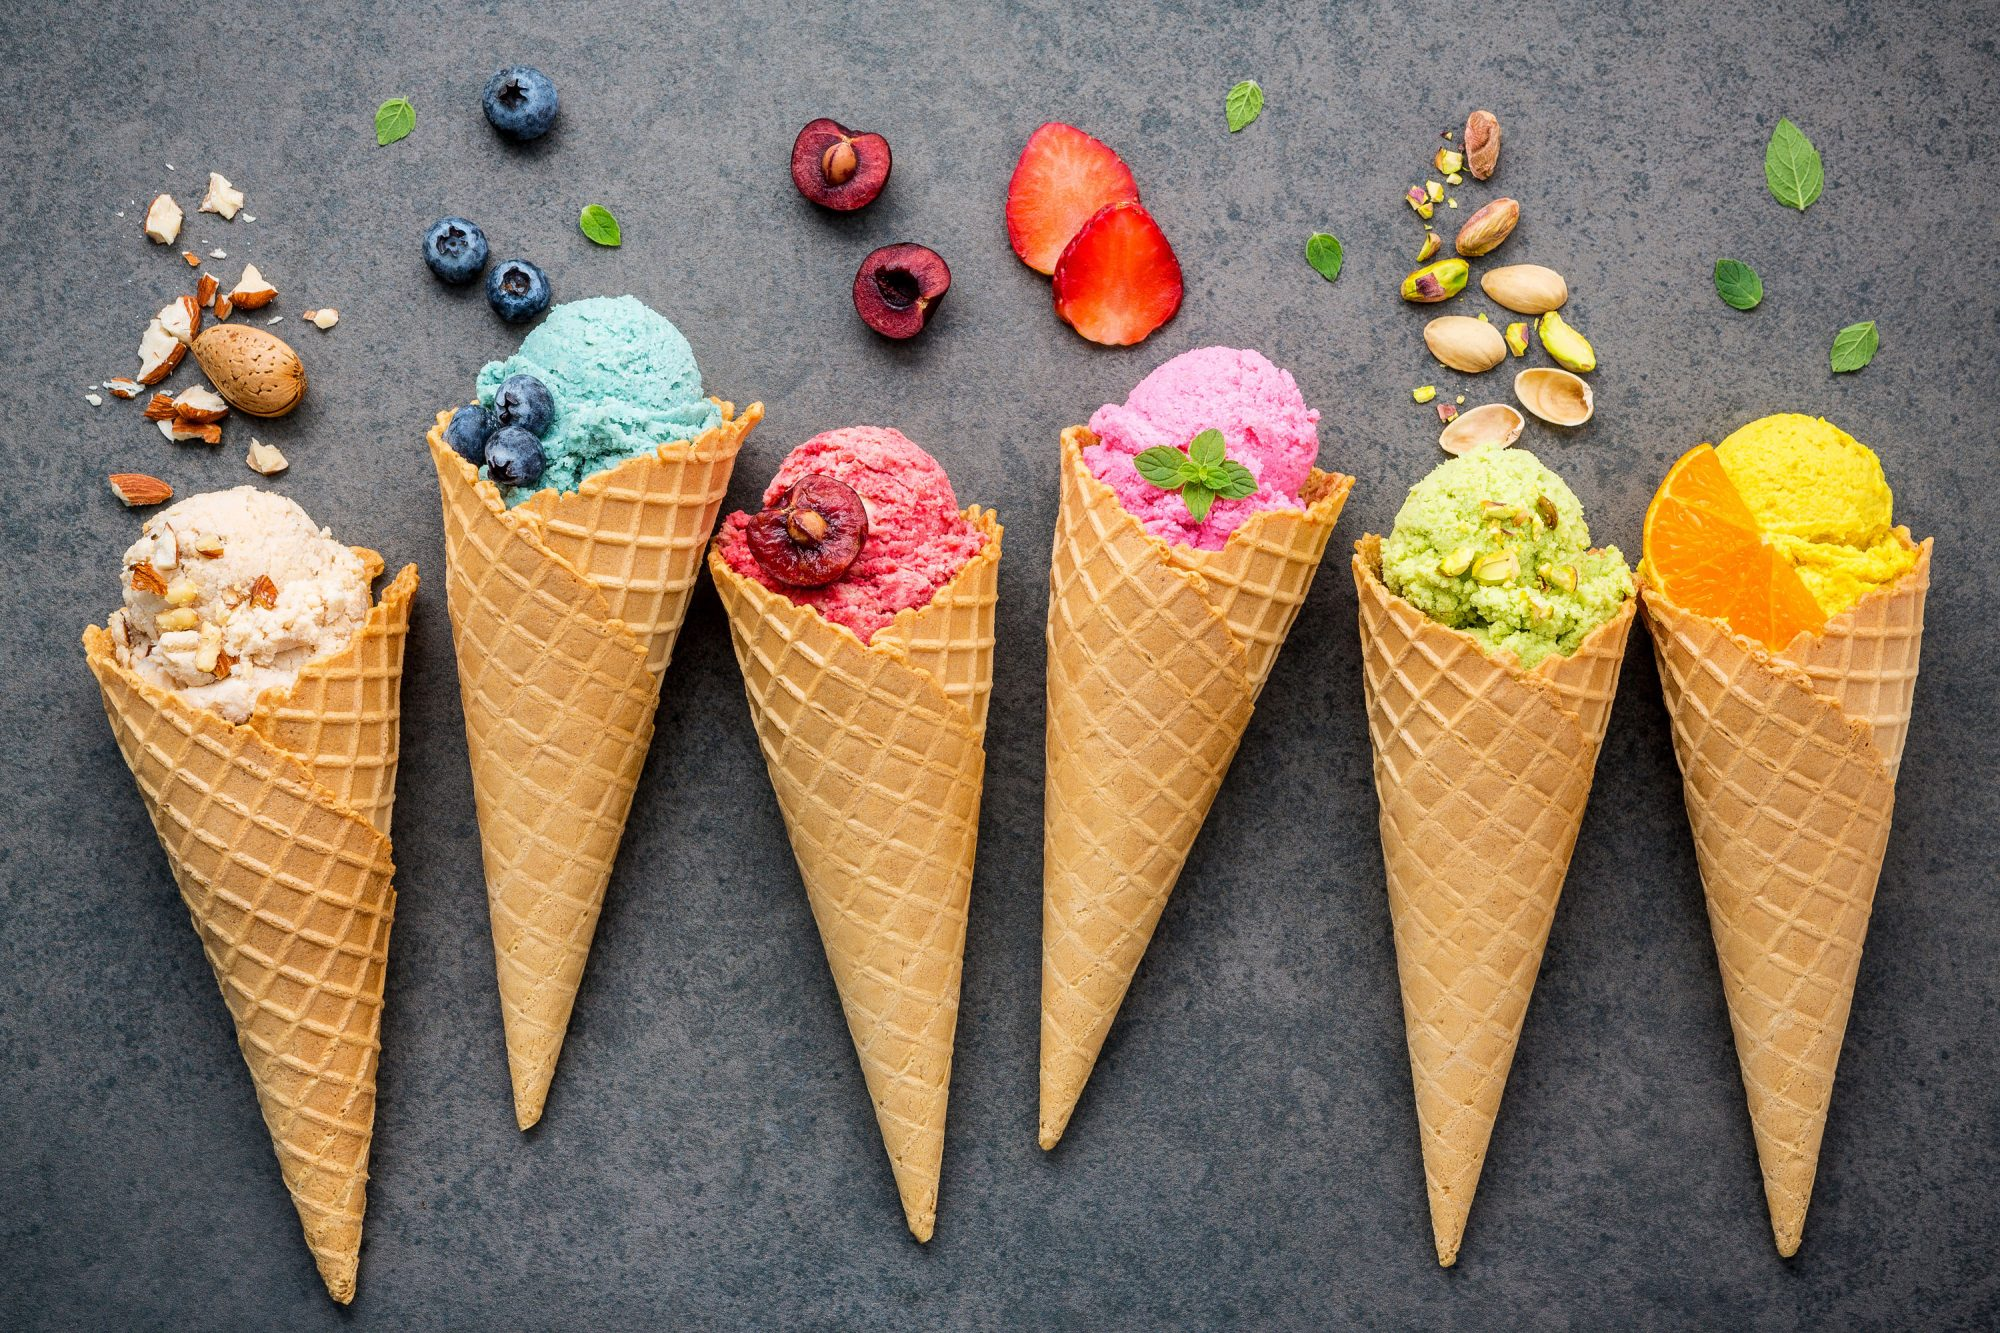 Colorful Flavored Ice Cream in Cones